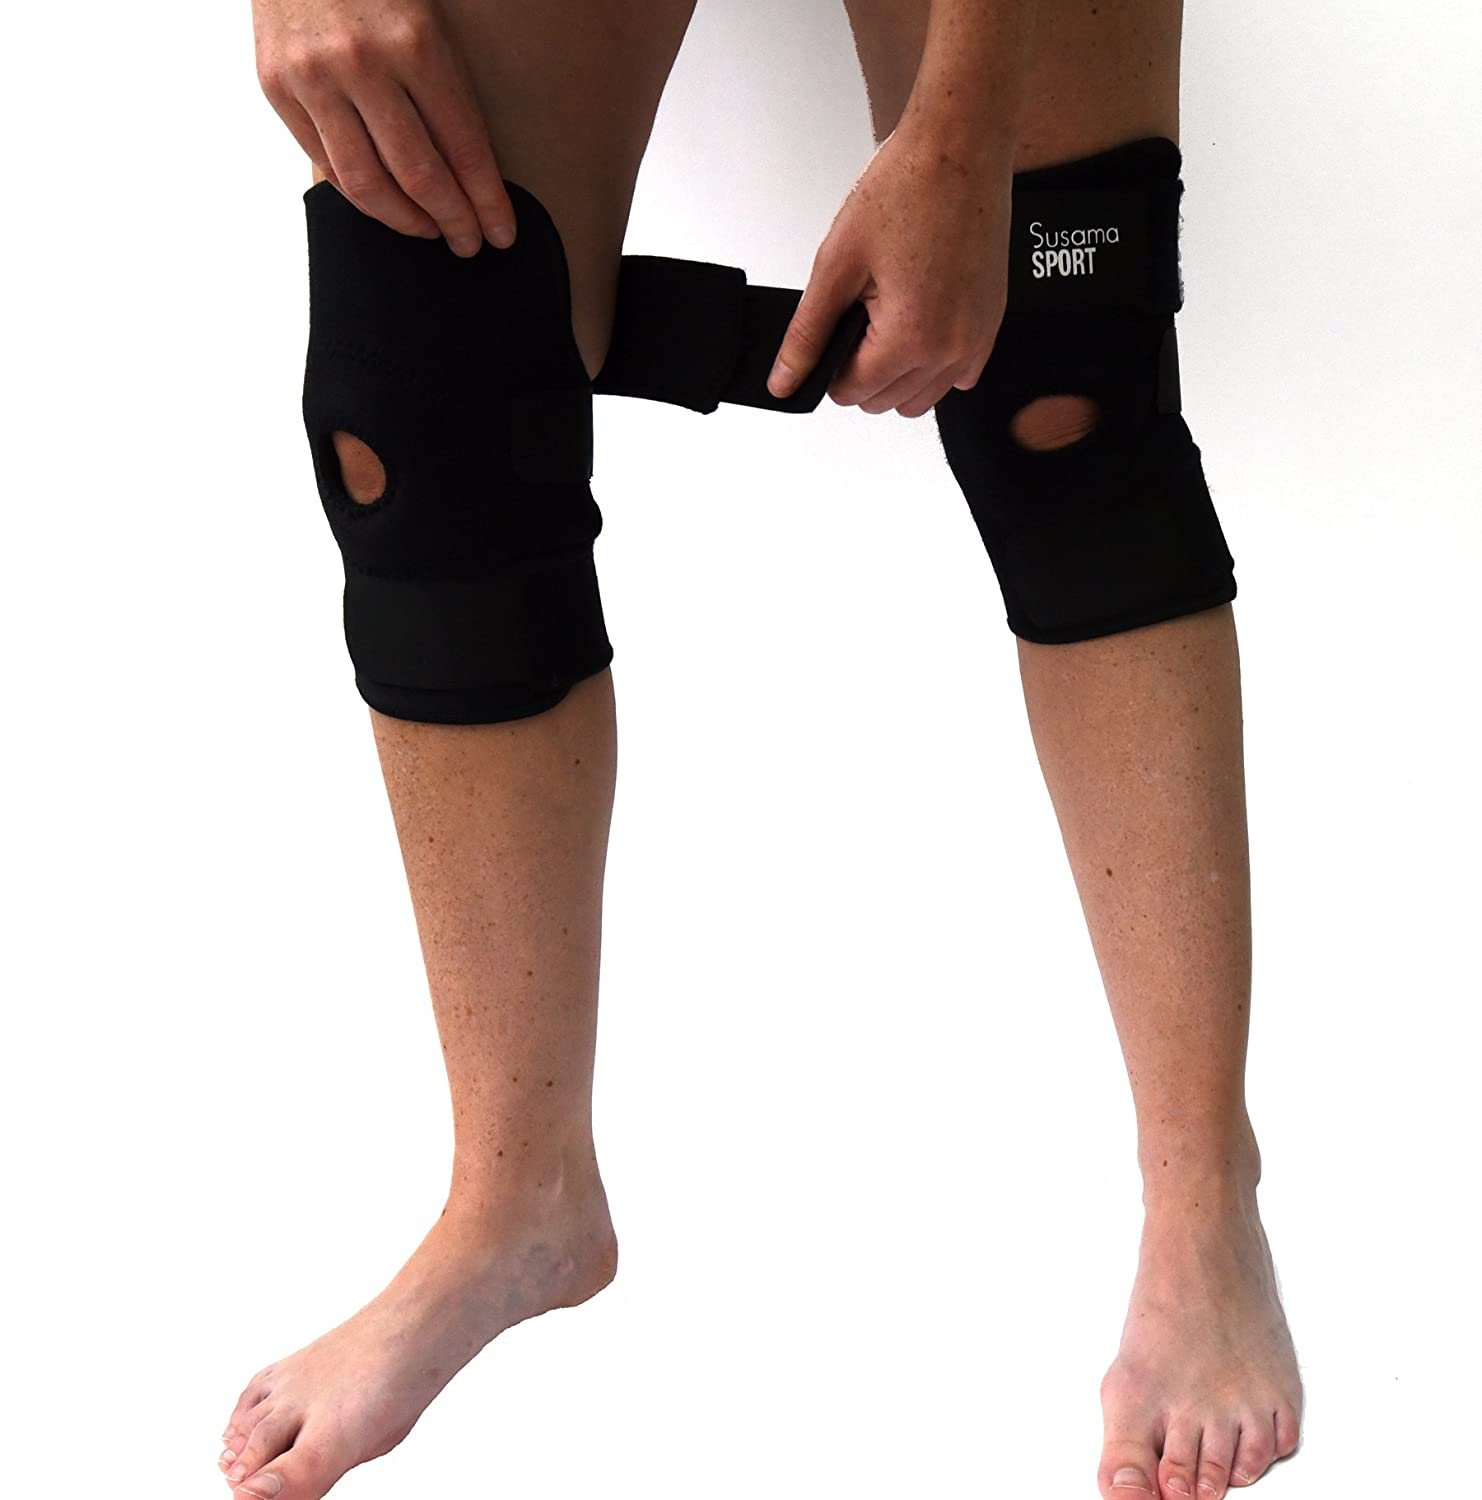 2 Susama Knee Braces – 1 Size Fits All - Breathable Neoprene Knee Support - Open Patella...